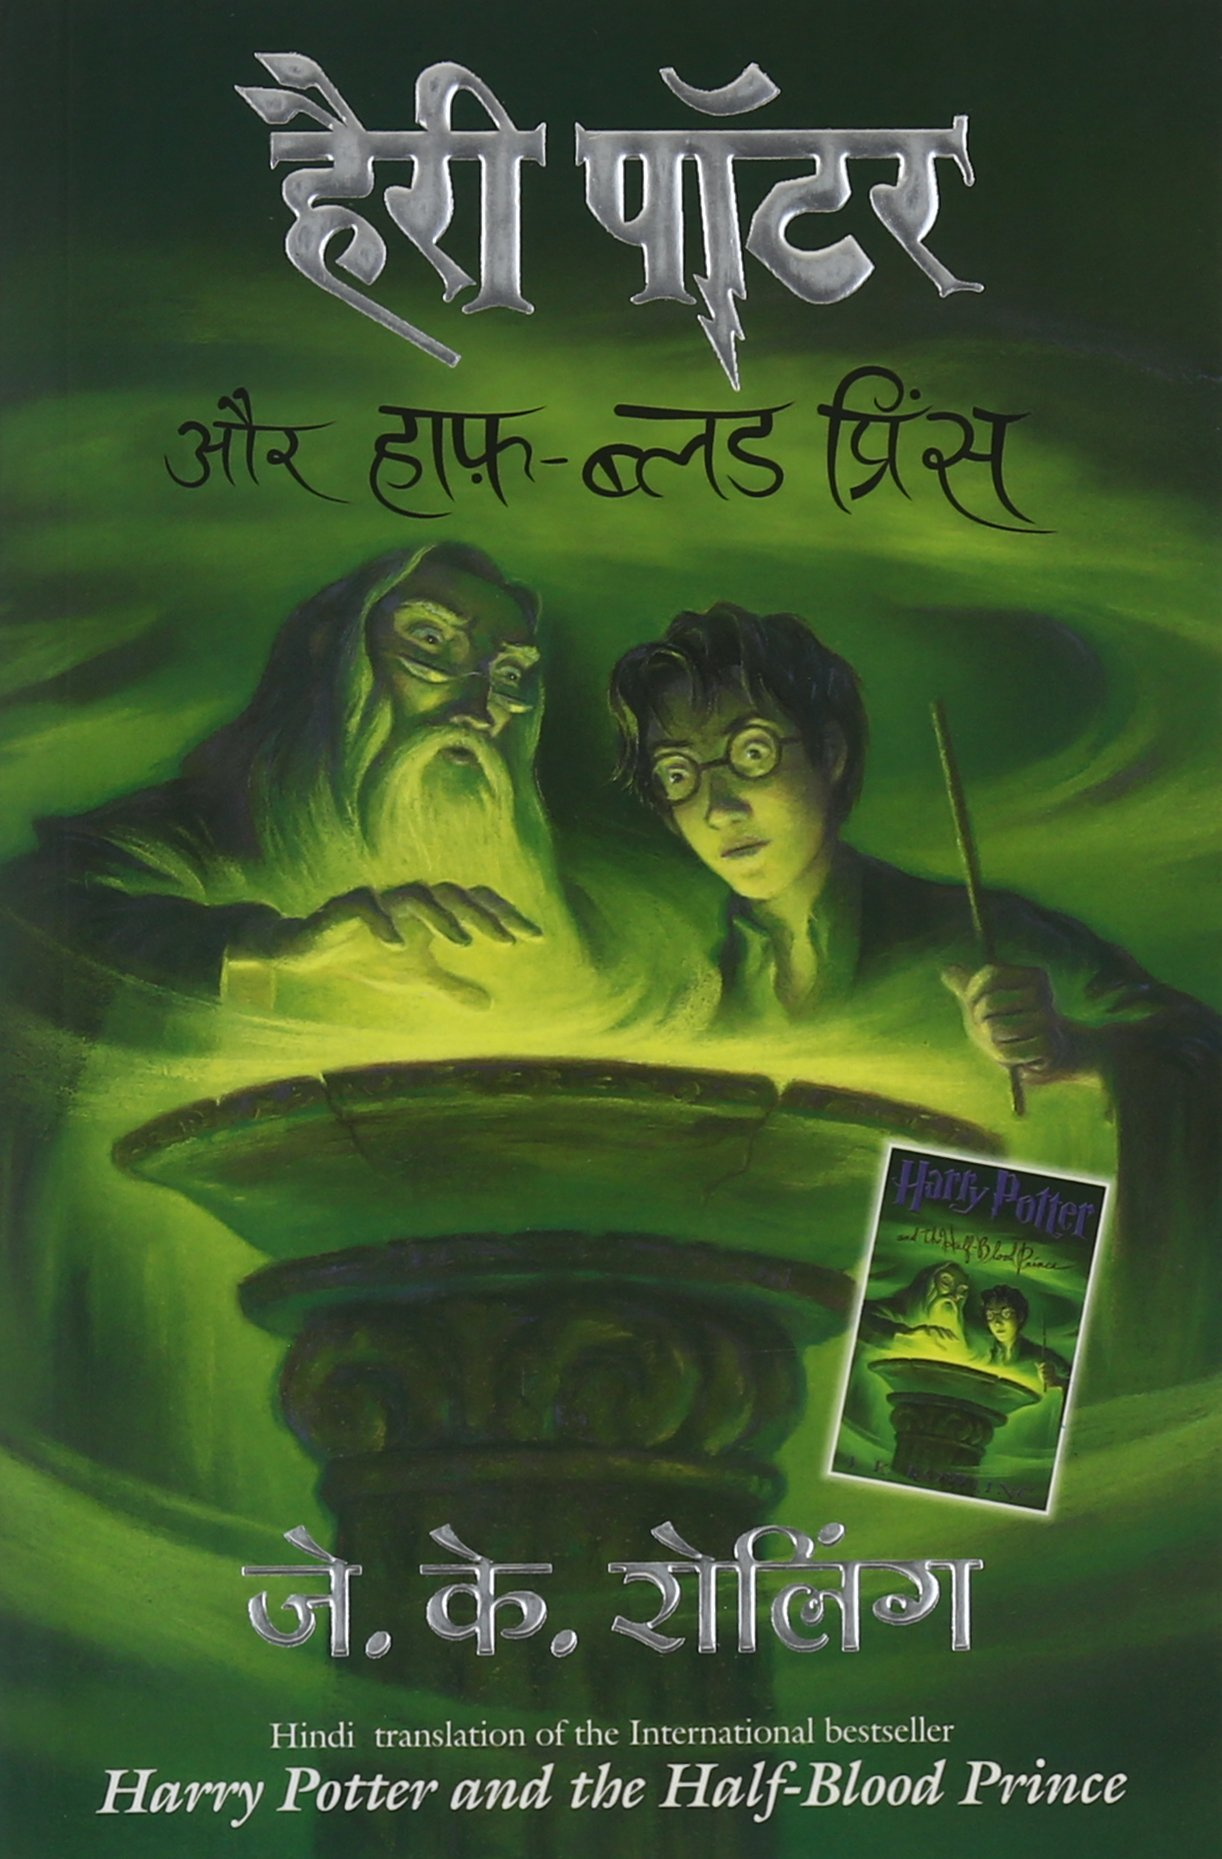 Buy Harry Potter Aur Half Blood Prince Book Online at Low Prices in India | Harry  Potter Aur Half Blood Prince Reviews & Ratings - Amazon.in